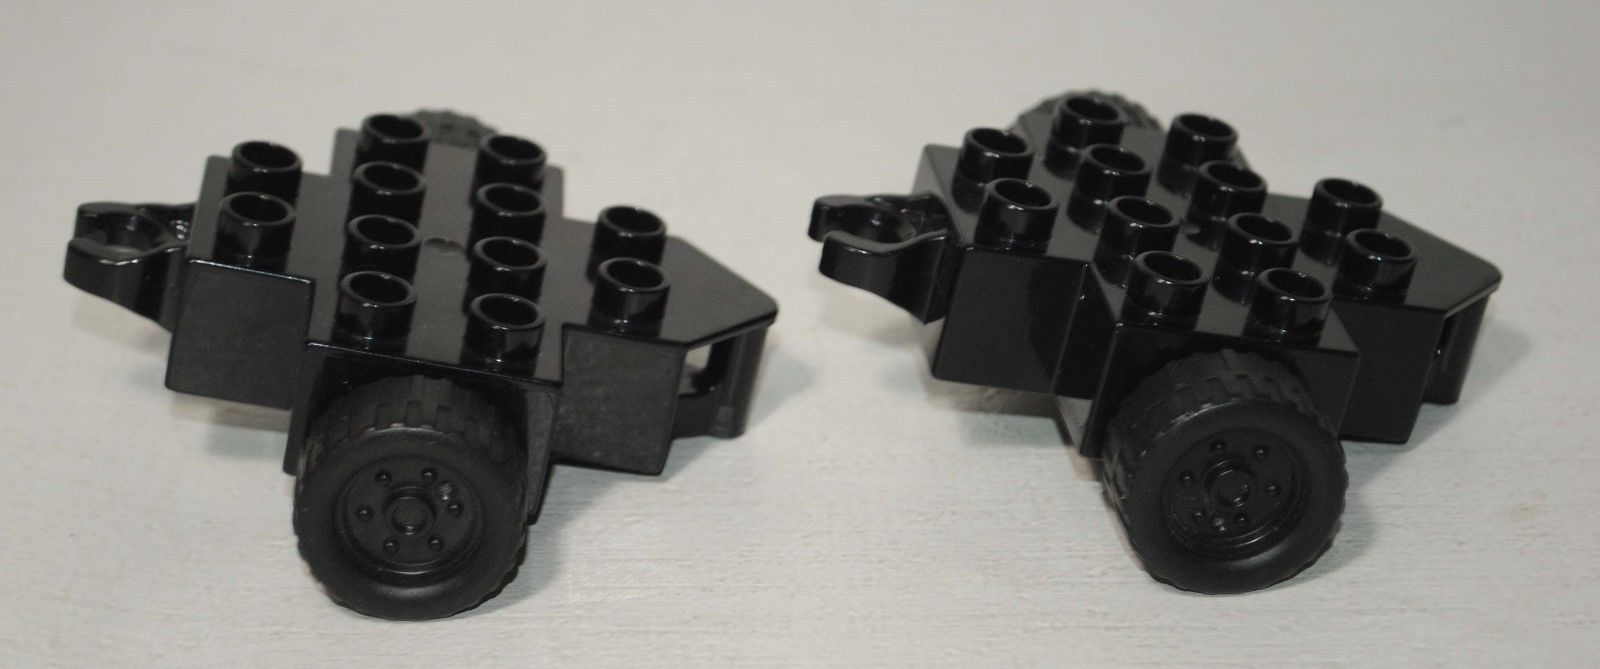 Lego DUPLO Lot of 2 Black Trailer Bases with Two Wheels and Hitch Ends